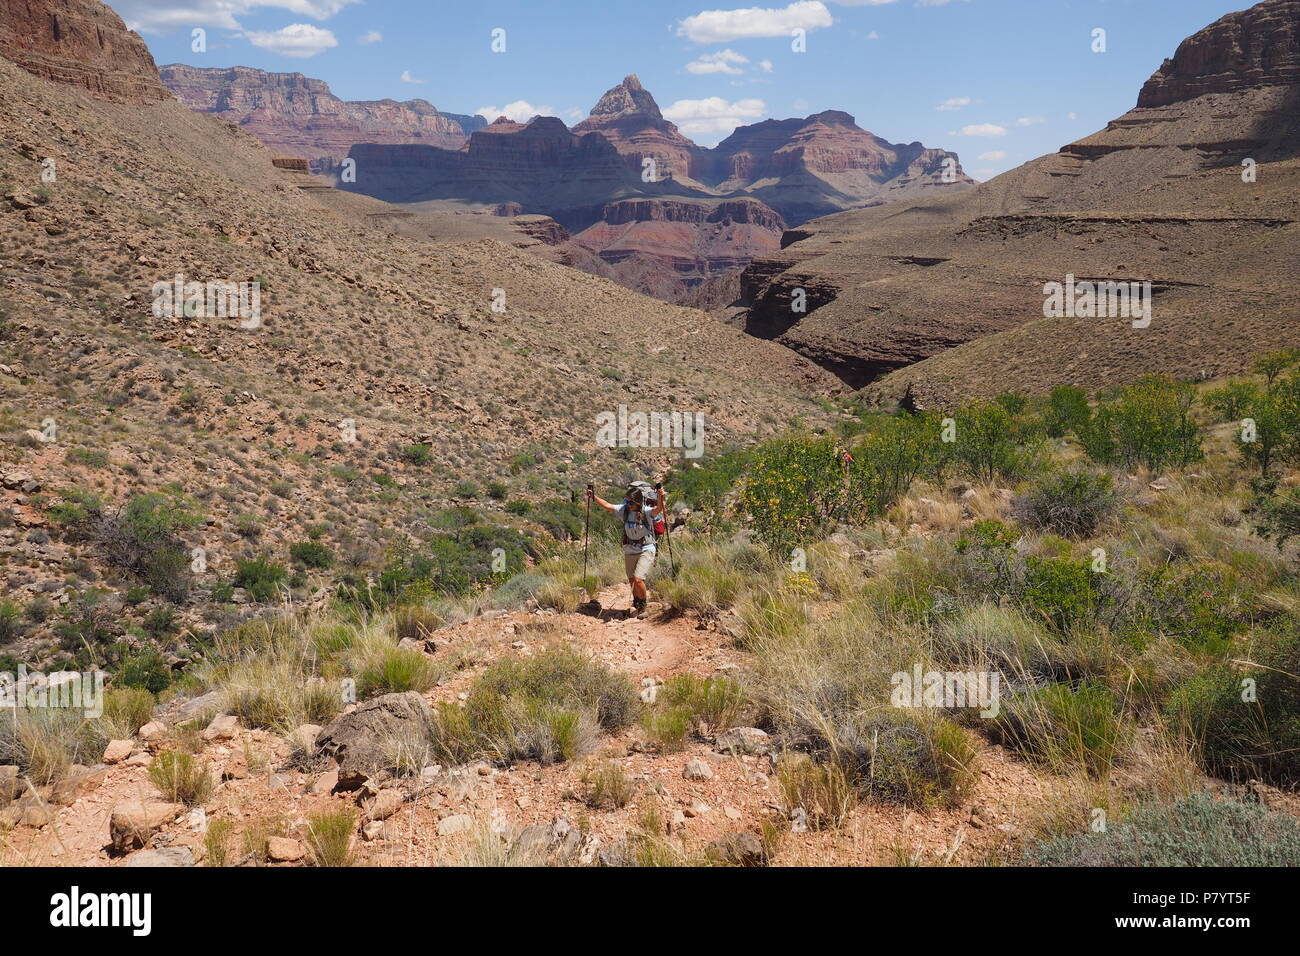 Young female backpacker on the Grandview trail in Grand Canyon National Park, Arizona, United States. - Stock Image